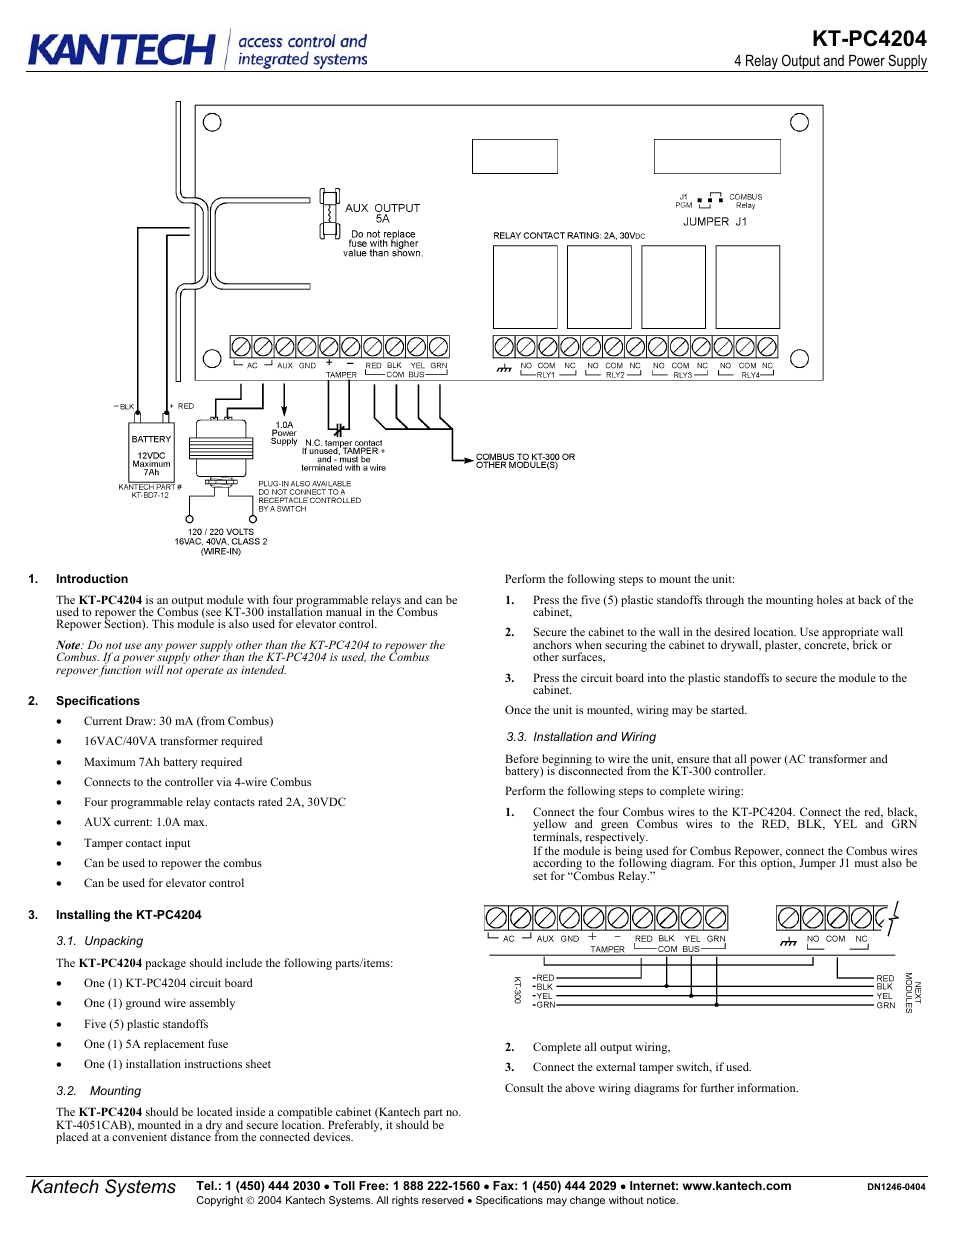 kantech kt pc4204 page1 kantech kt pc4204 user manual 2 pages kantech wiring diagram at bakdesigns.co